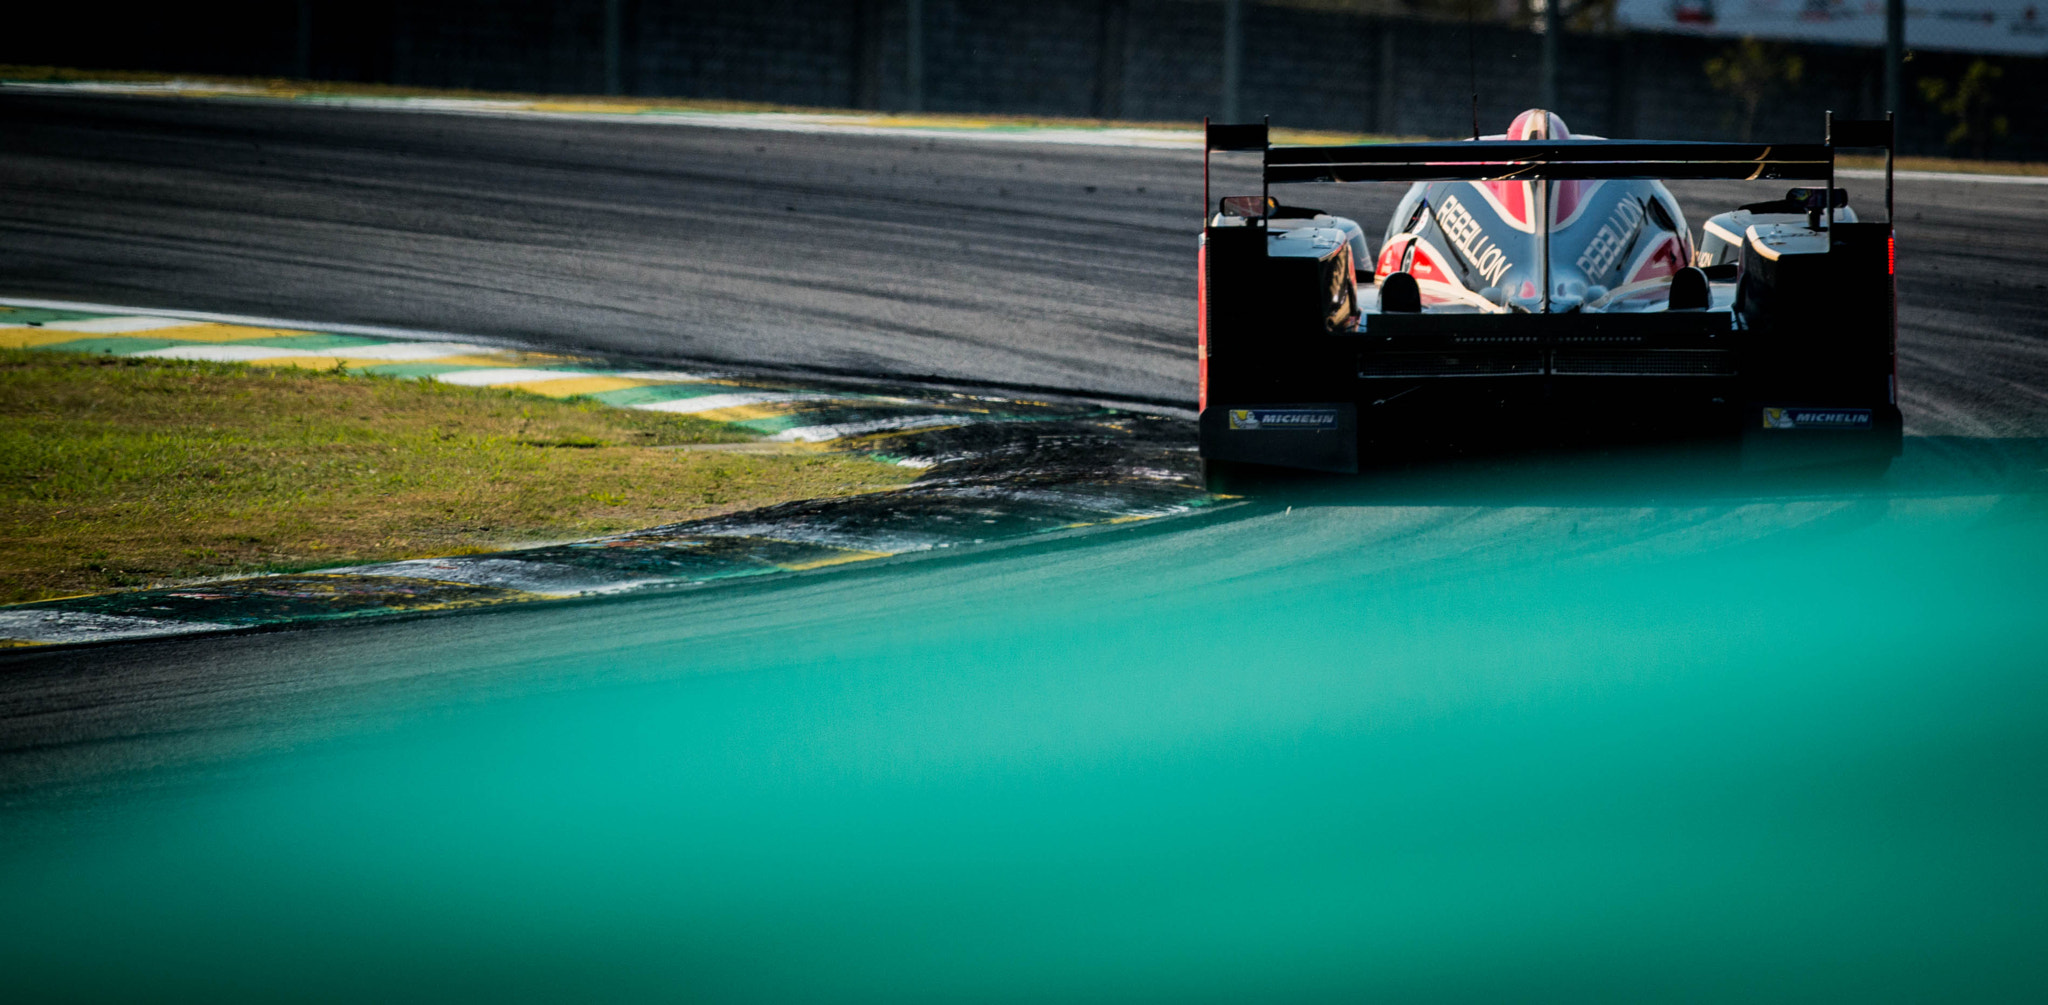 Photograph LeMans 6h of SP by Victor Eleutério on 500px